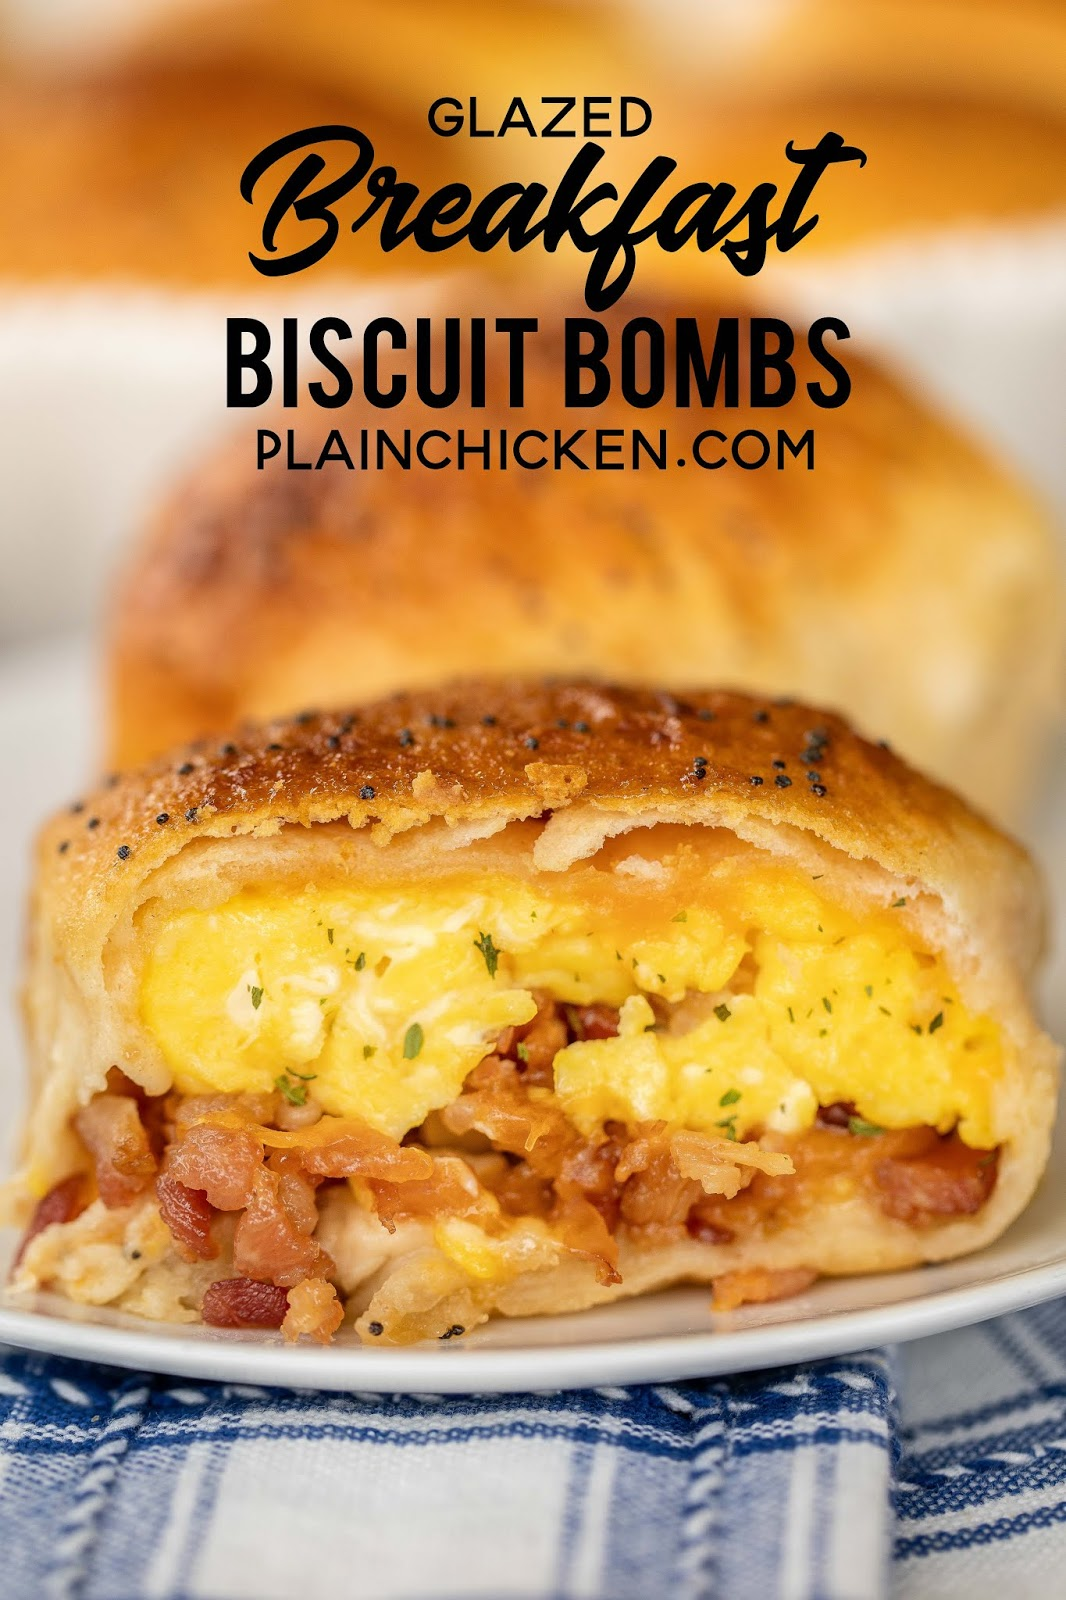 Glazed Breakfast Biscuit Bombs - the best way to start the day! Biscuits stuffed with scrambled eggs, bacon and cheese and topped with a sweet and savory glaze. We make these at least once a month! Refrigerated biscuits, milk, eggs, bacon, cheddar cheese, butter, brown sugar, dijon mustard, Worcestershire sauce and poppy seeds. A great dish for breakfast, brunch and overnight guests! #breakfast #biscuits